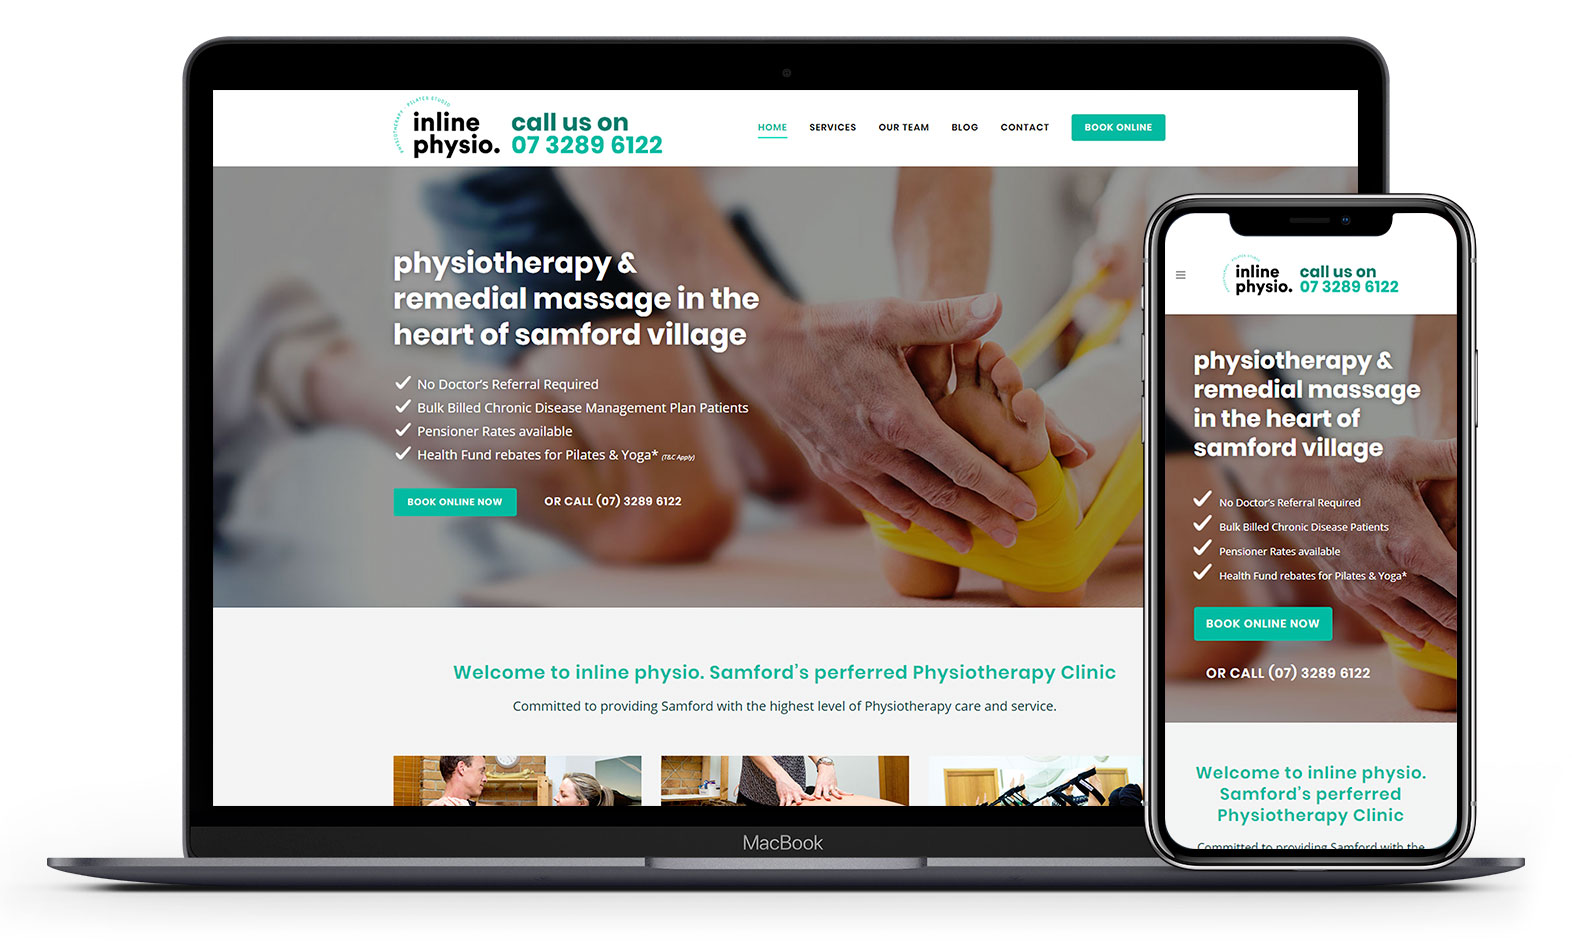 Inline Physio's website design displayed responsive devices